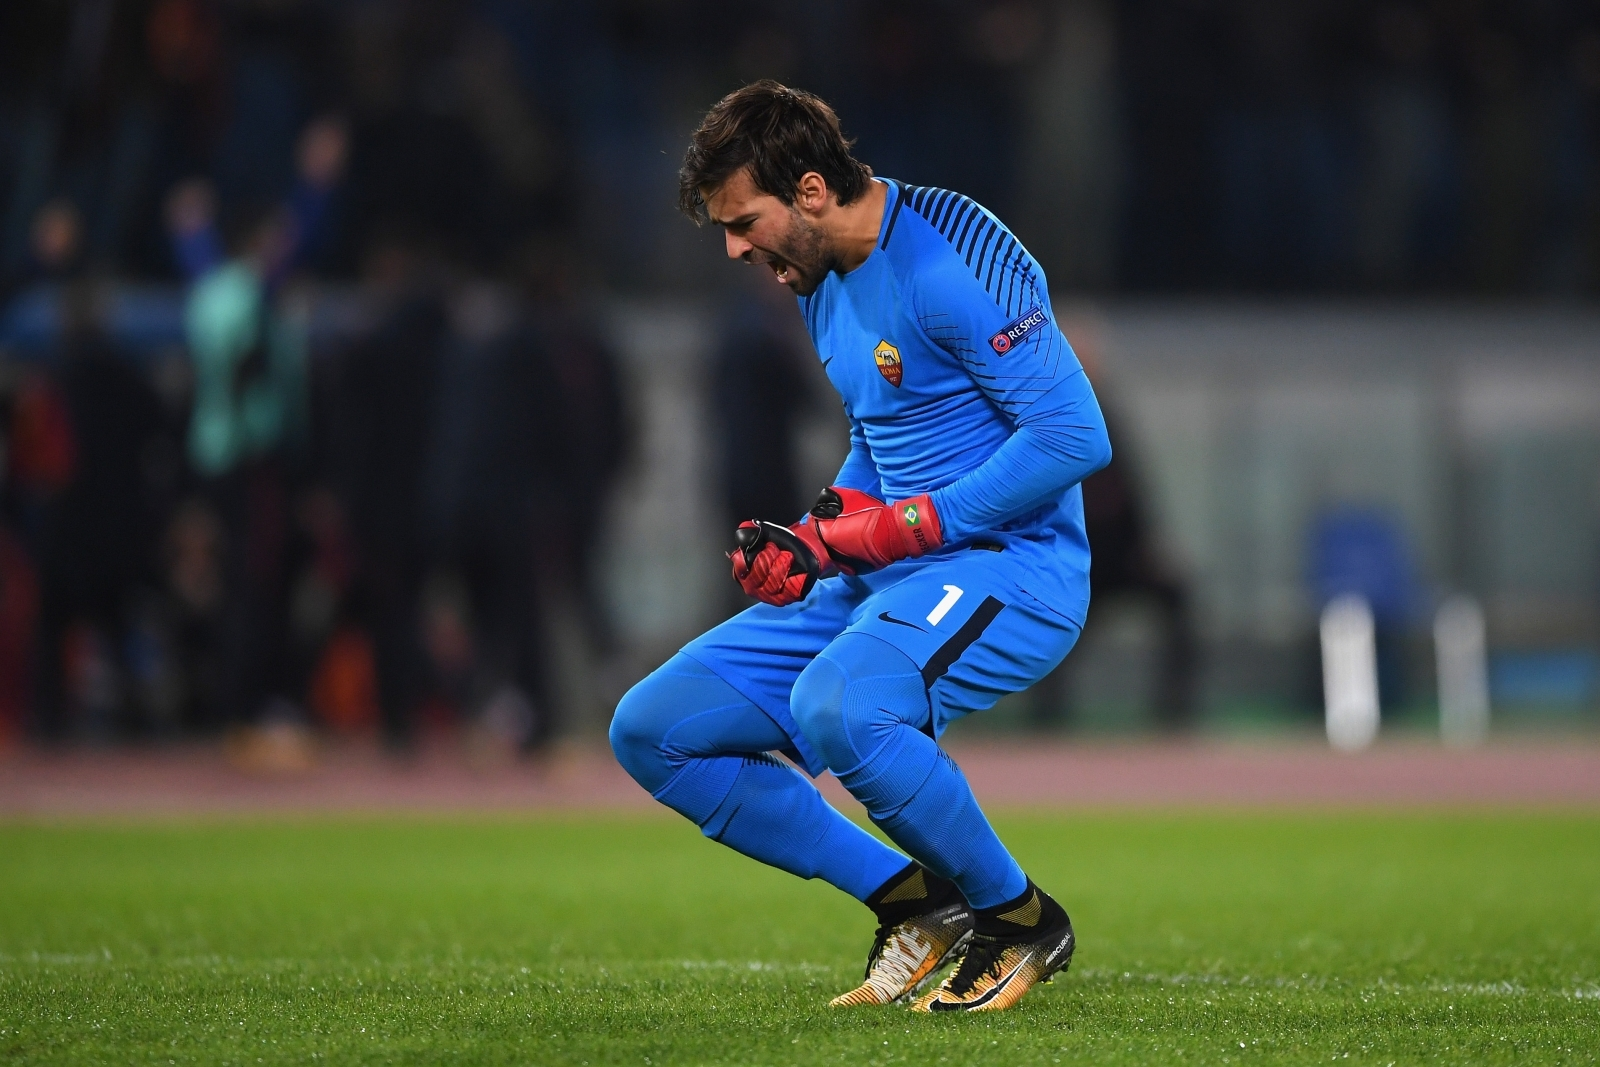 Liverpool want sudden Alisson deal to fend off Real Madrid, PSG